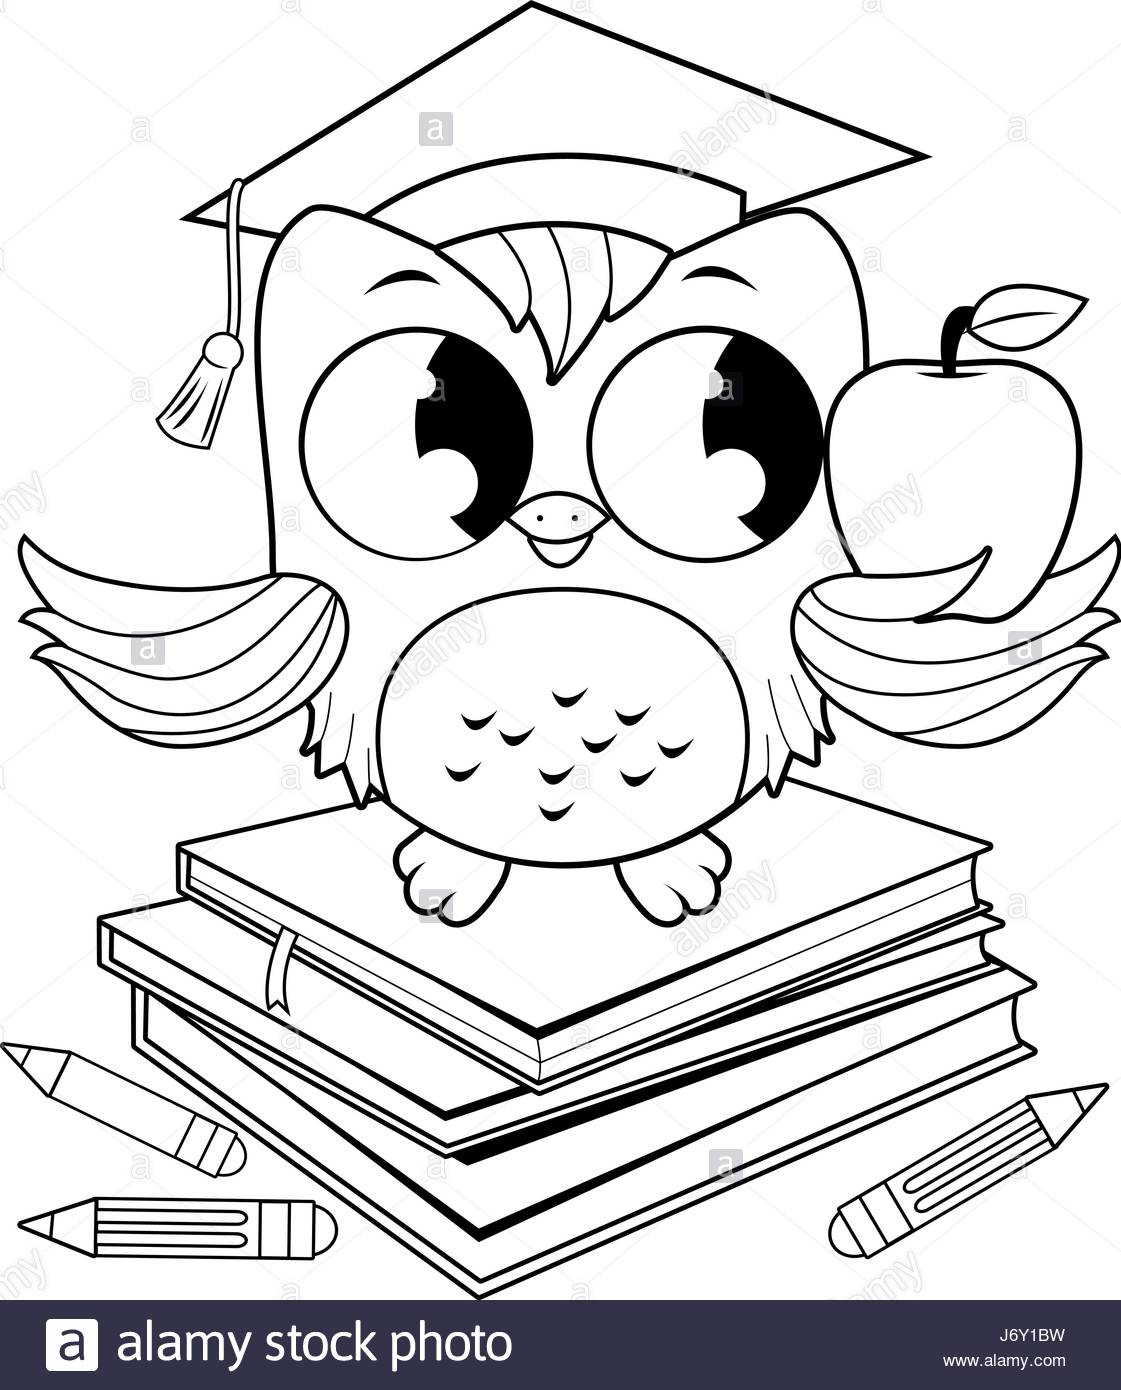 1121x1390 Owl On Books With Graduation Hat Coloring Book Page Stock Vector